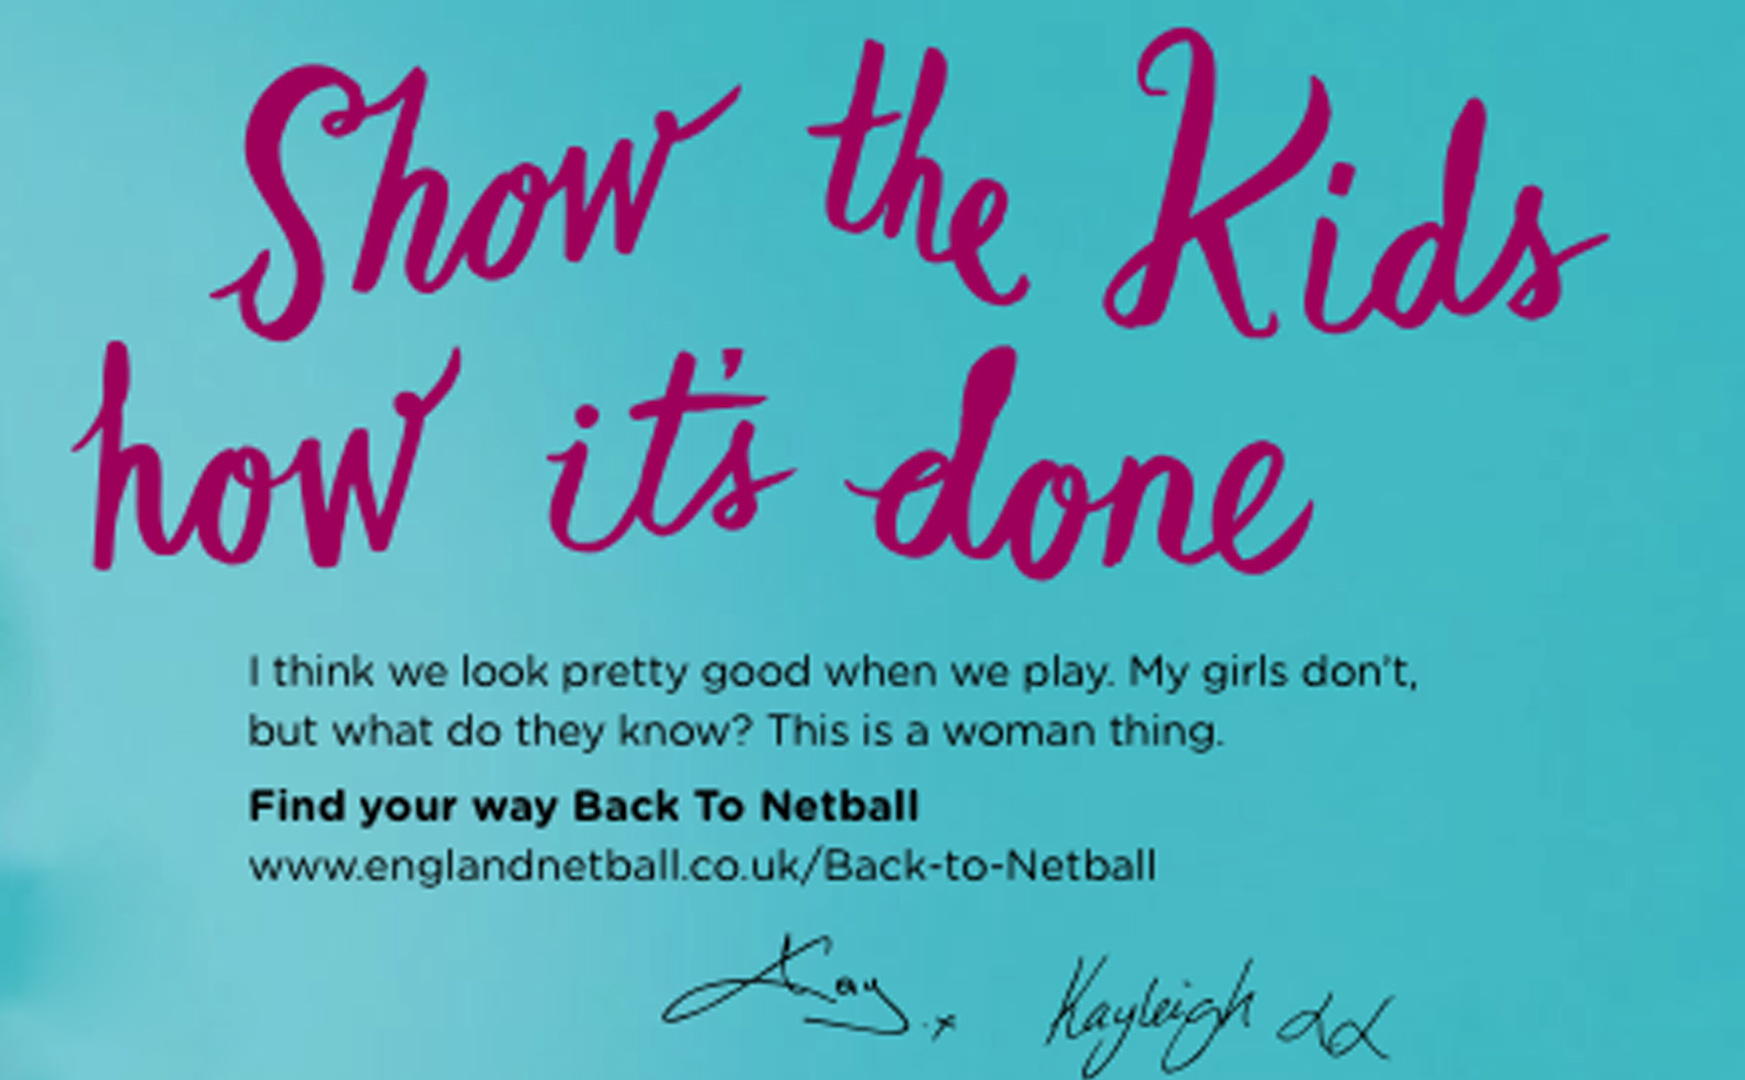 back to netball Inspire Lut